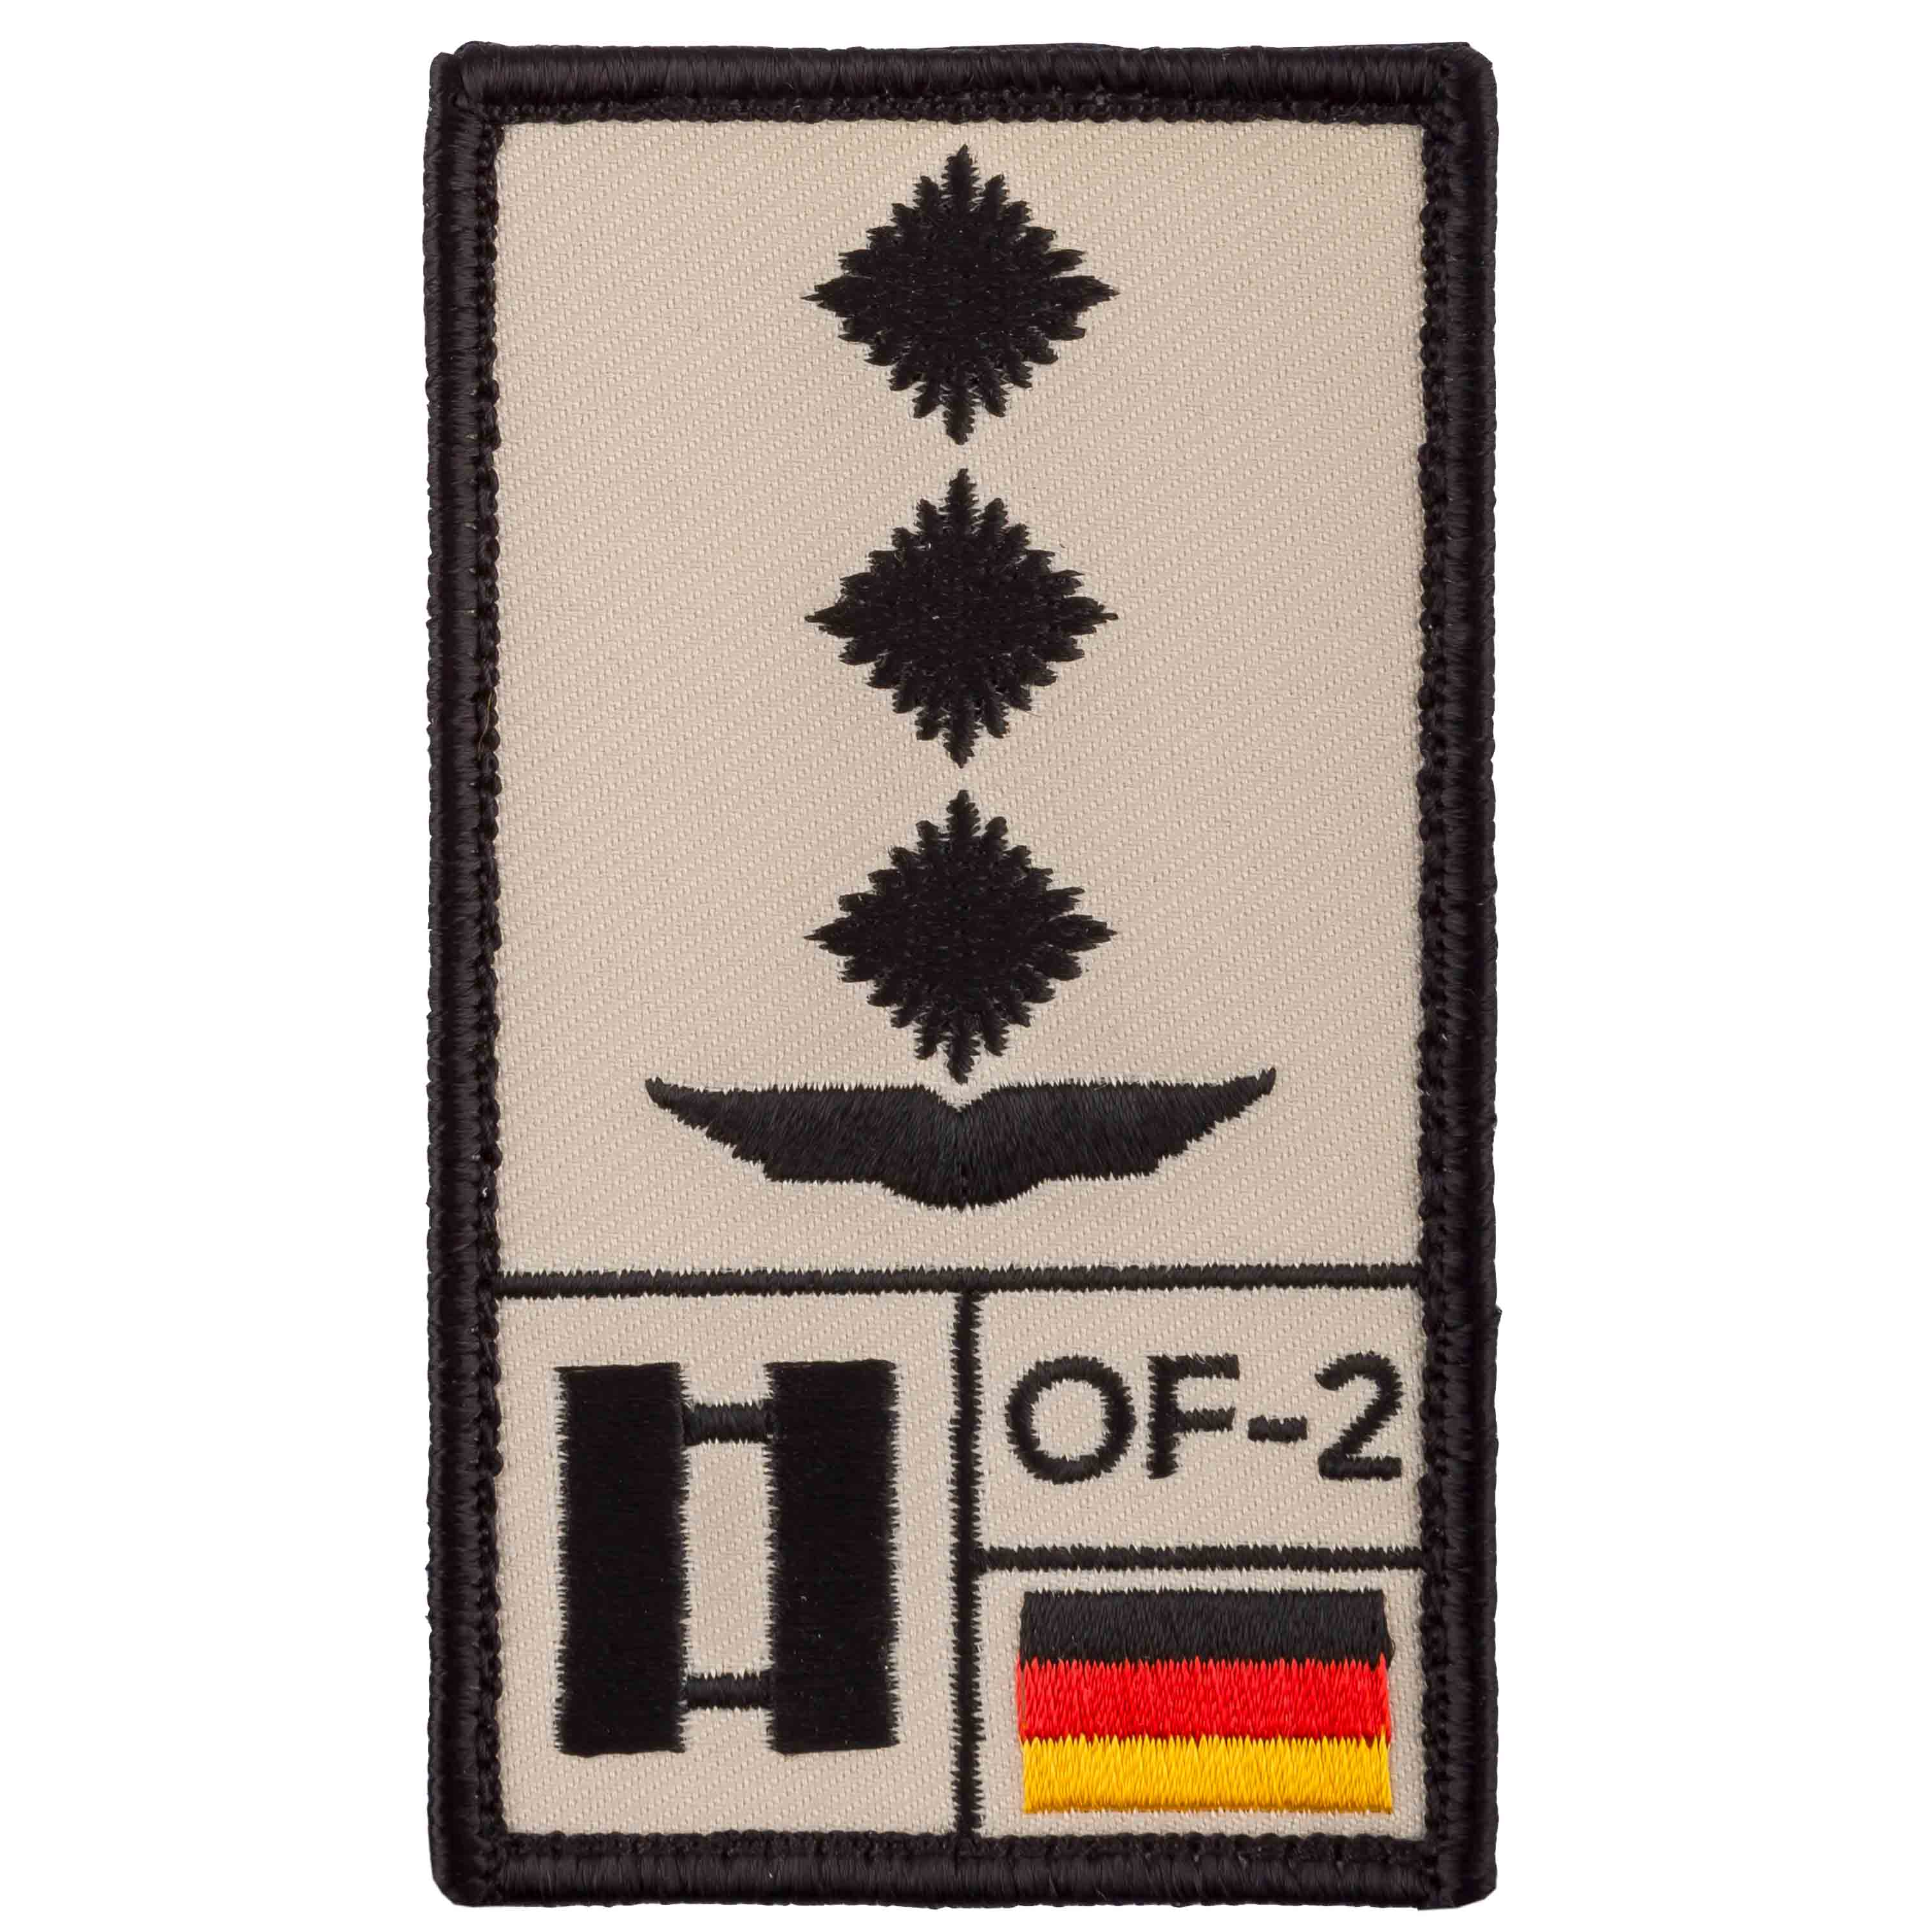 Café Viereck Rank Patch Hauptmann Luftwaffe sand